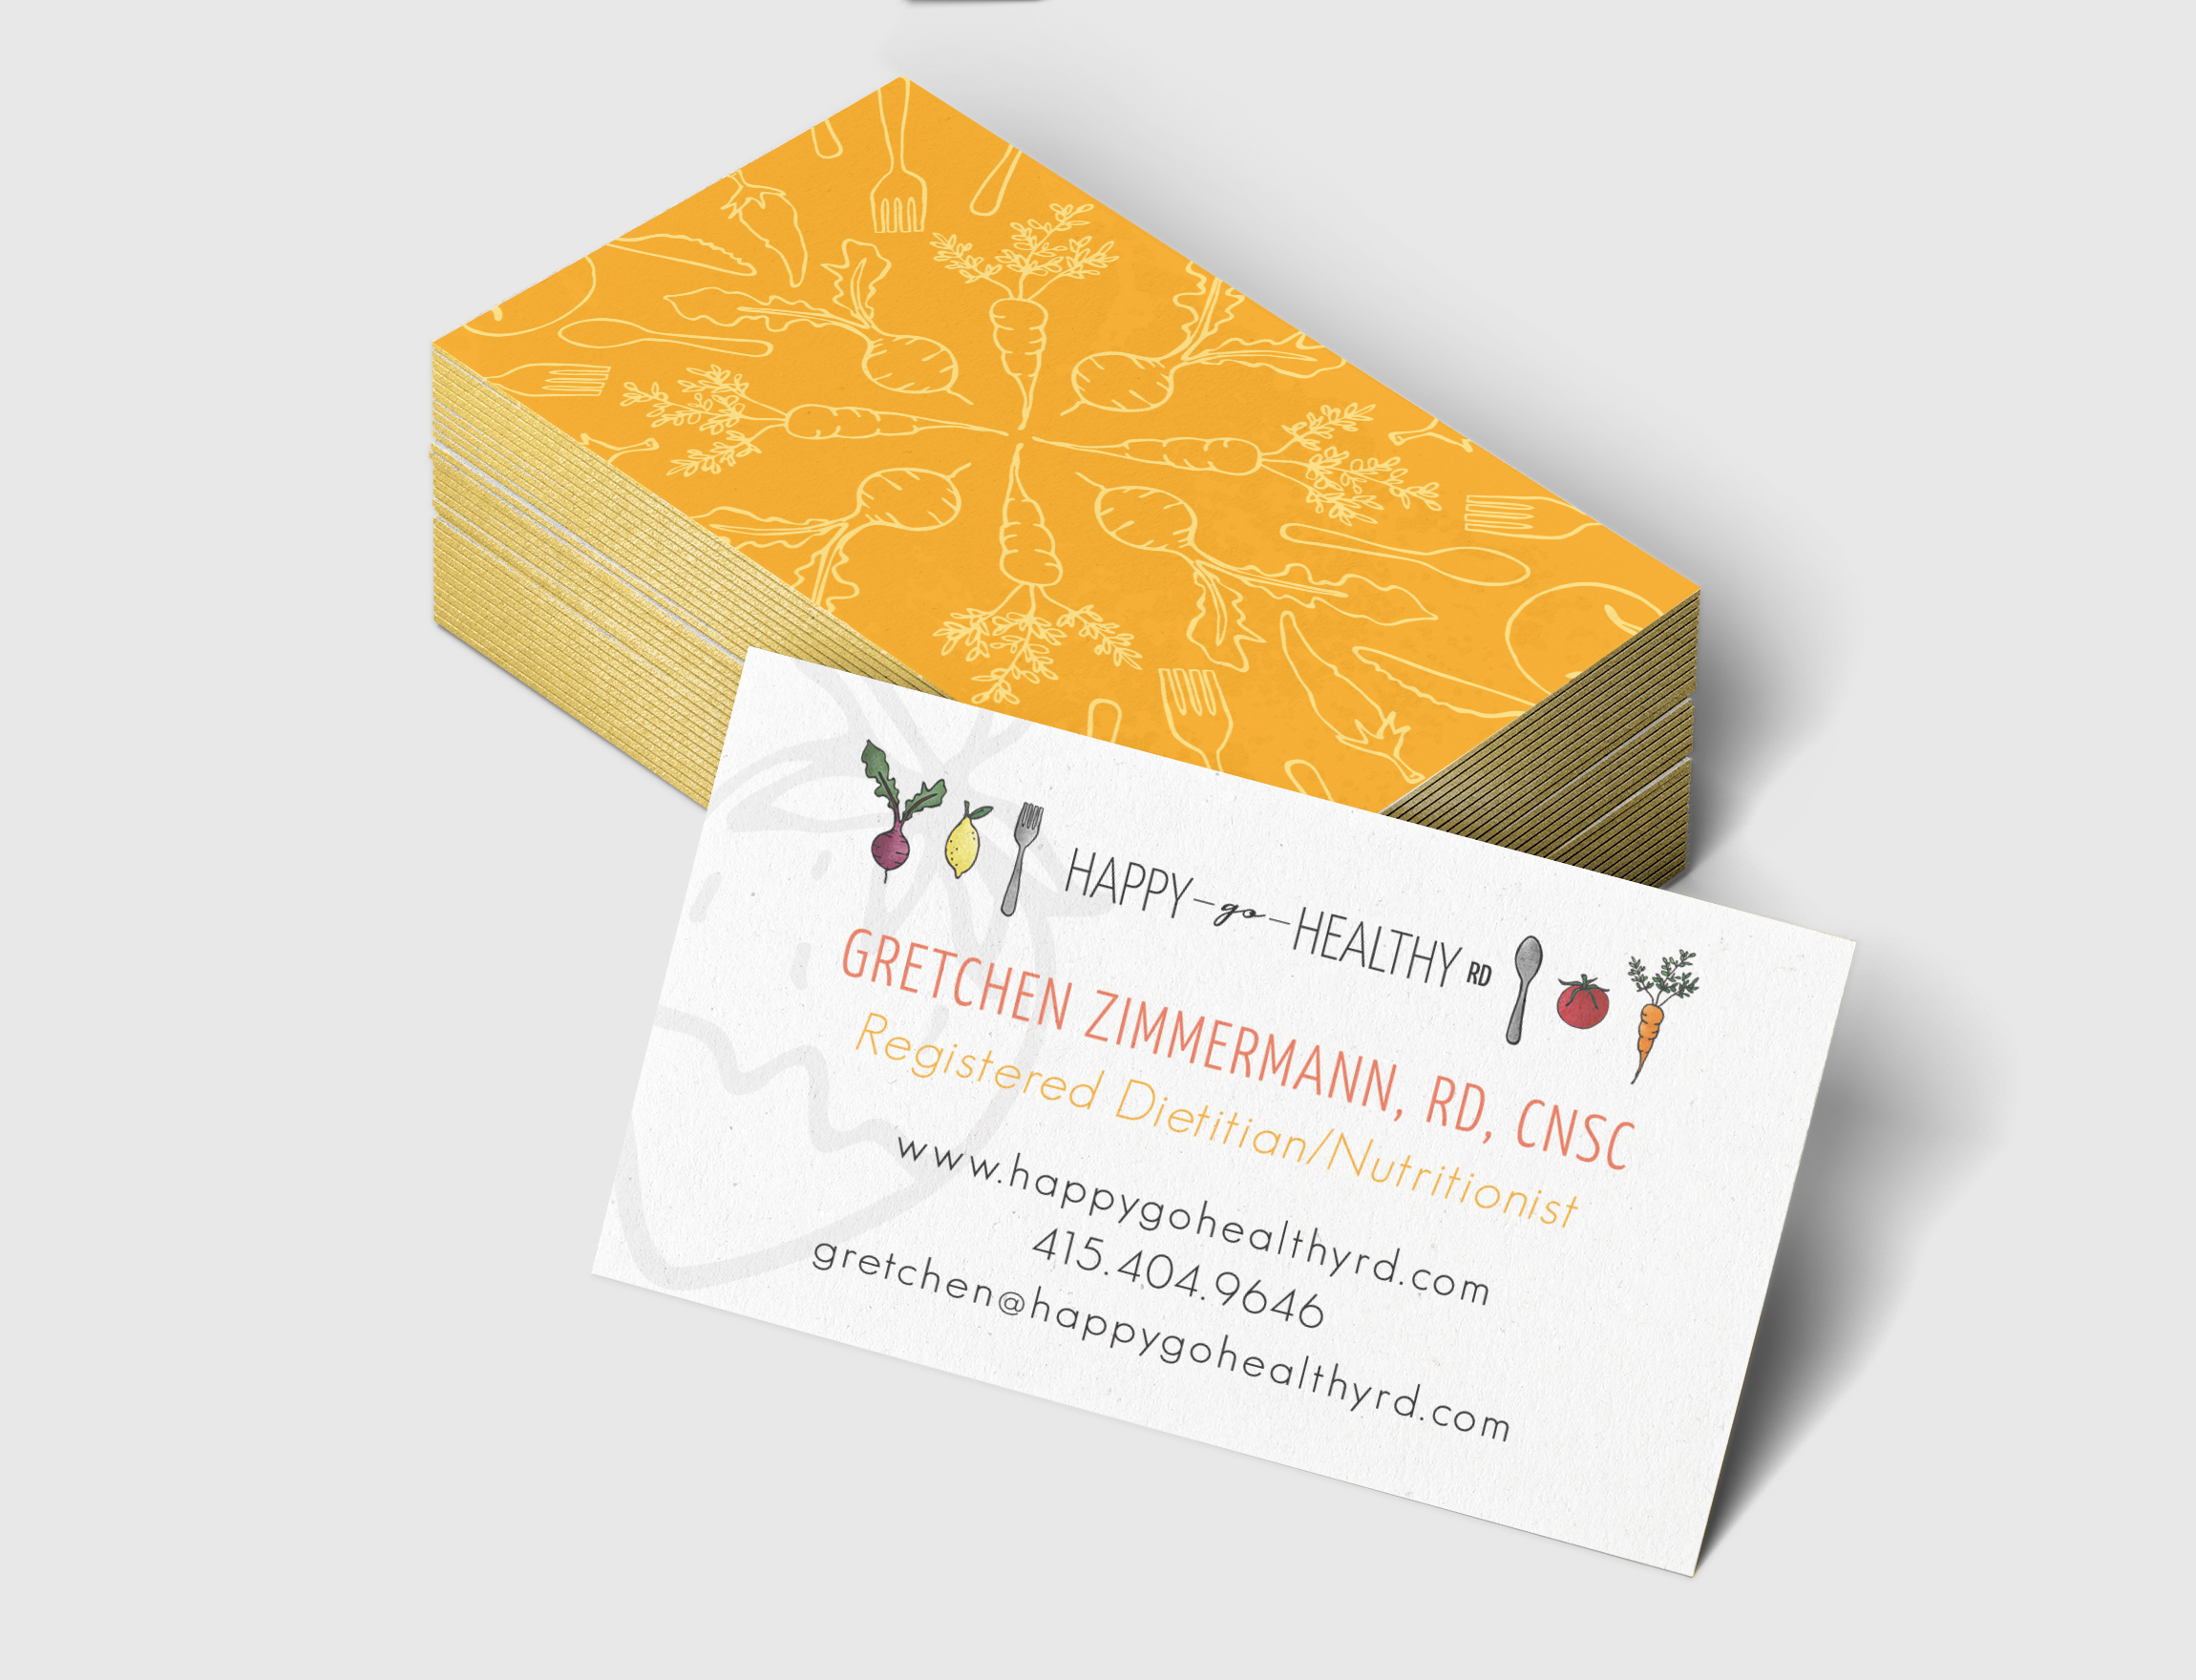 Four different business card designs